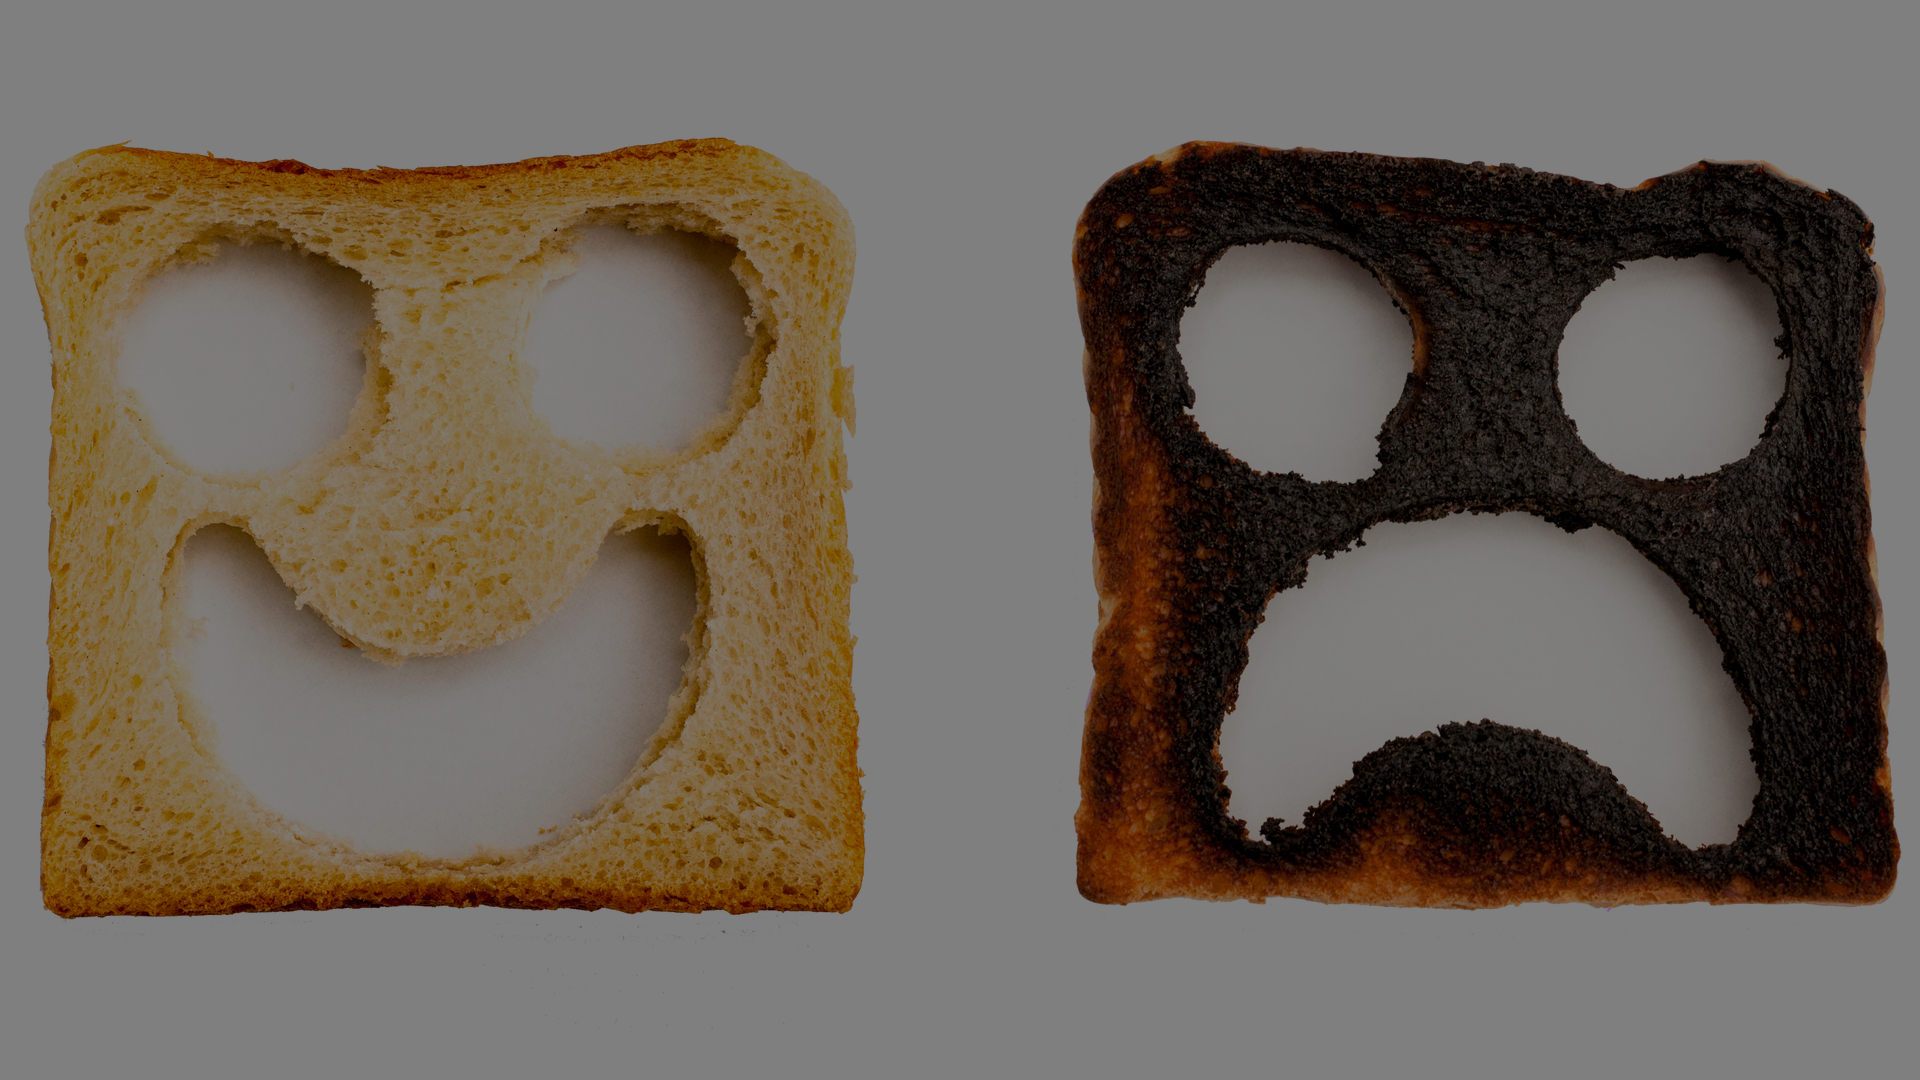 Food Safety & Acrylamide: Should You be Concerned?